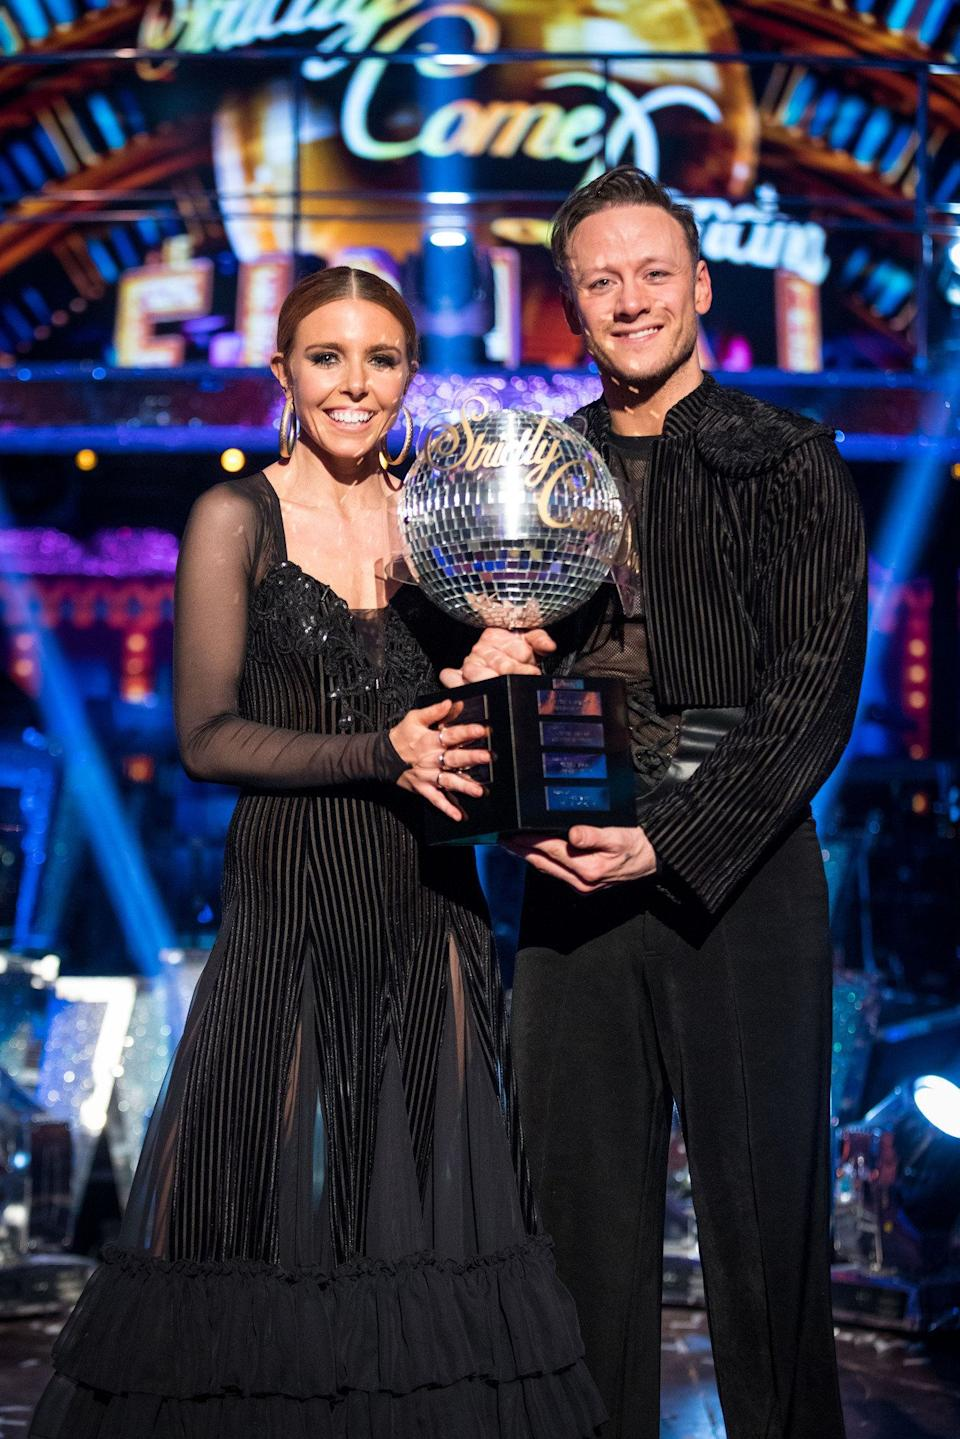 Stacey and Kevin got together after winning Strictly in 2018 (Photo: Aaron Chown - PA Images via Getty Images)